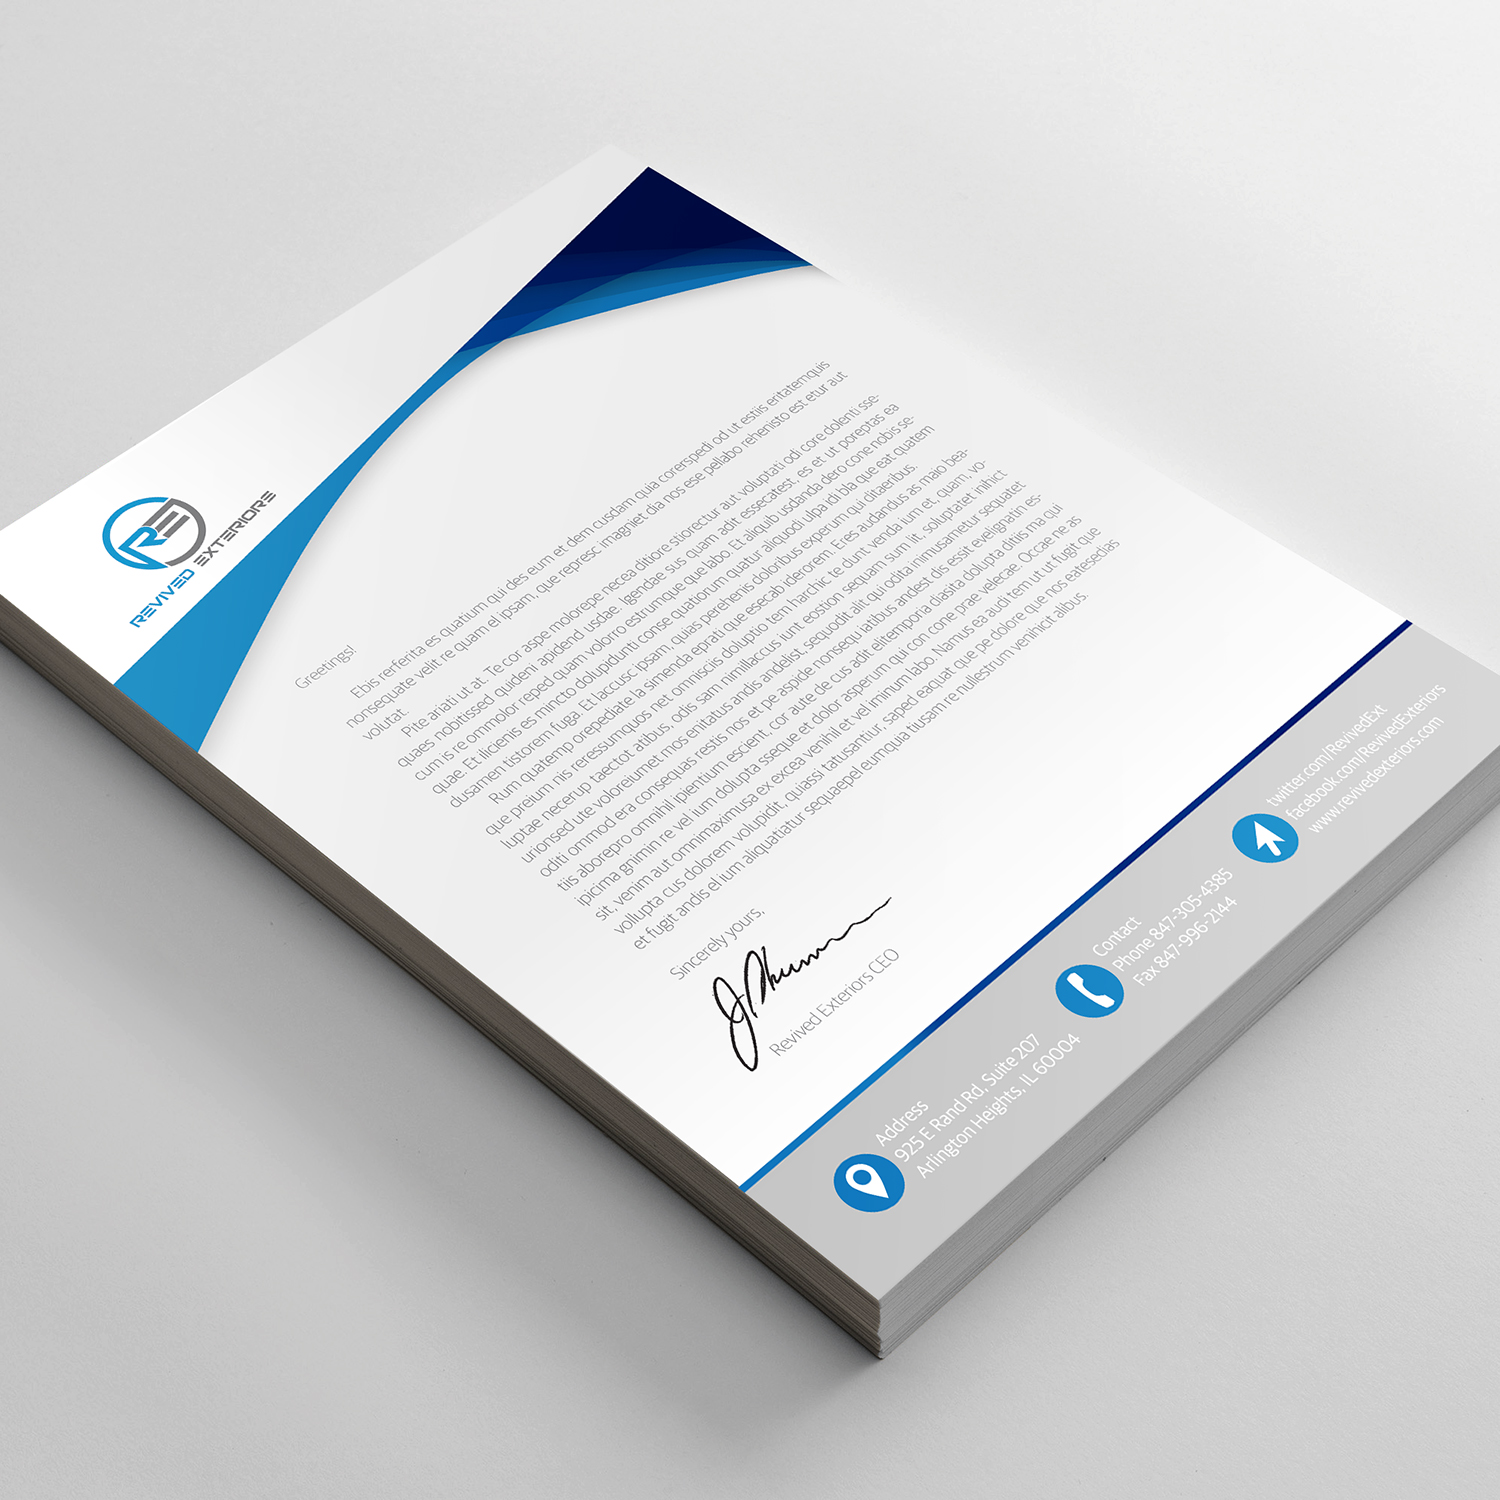 Bold Feminine Construction Company Letterhead Design For Revived Exteriors Inc In United States